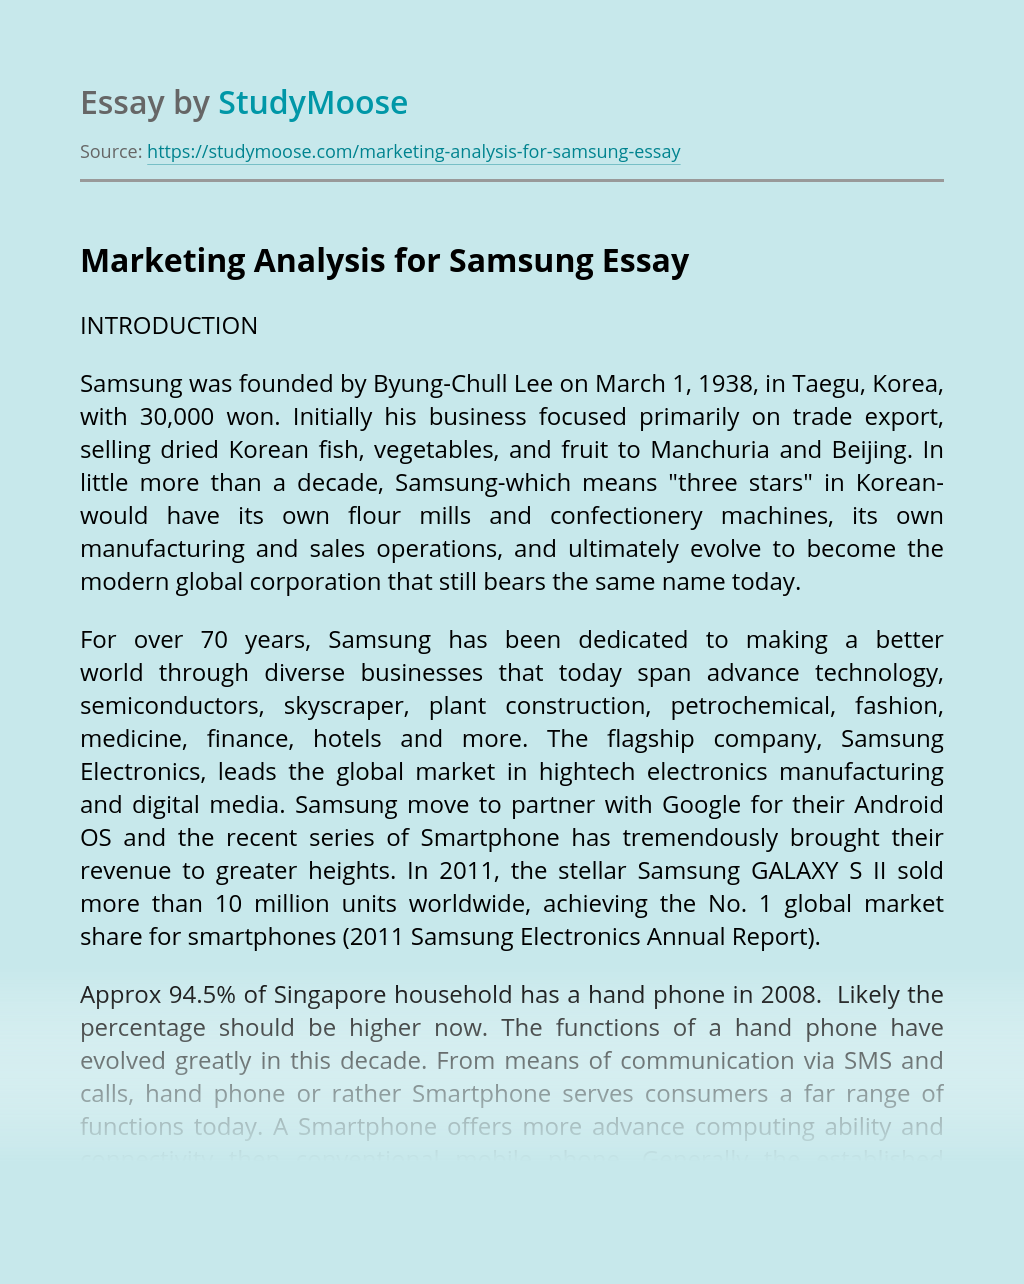 Marketing Analysis for Samsung